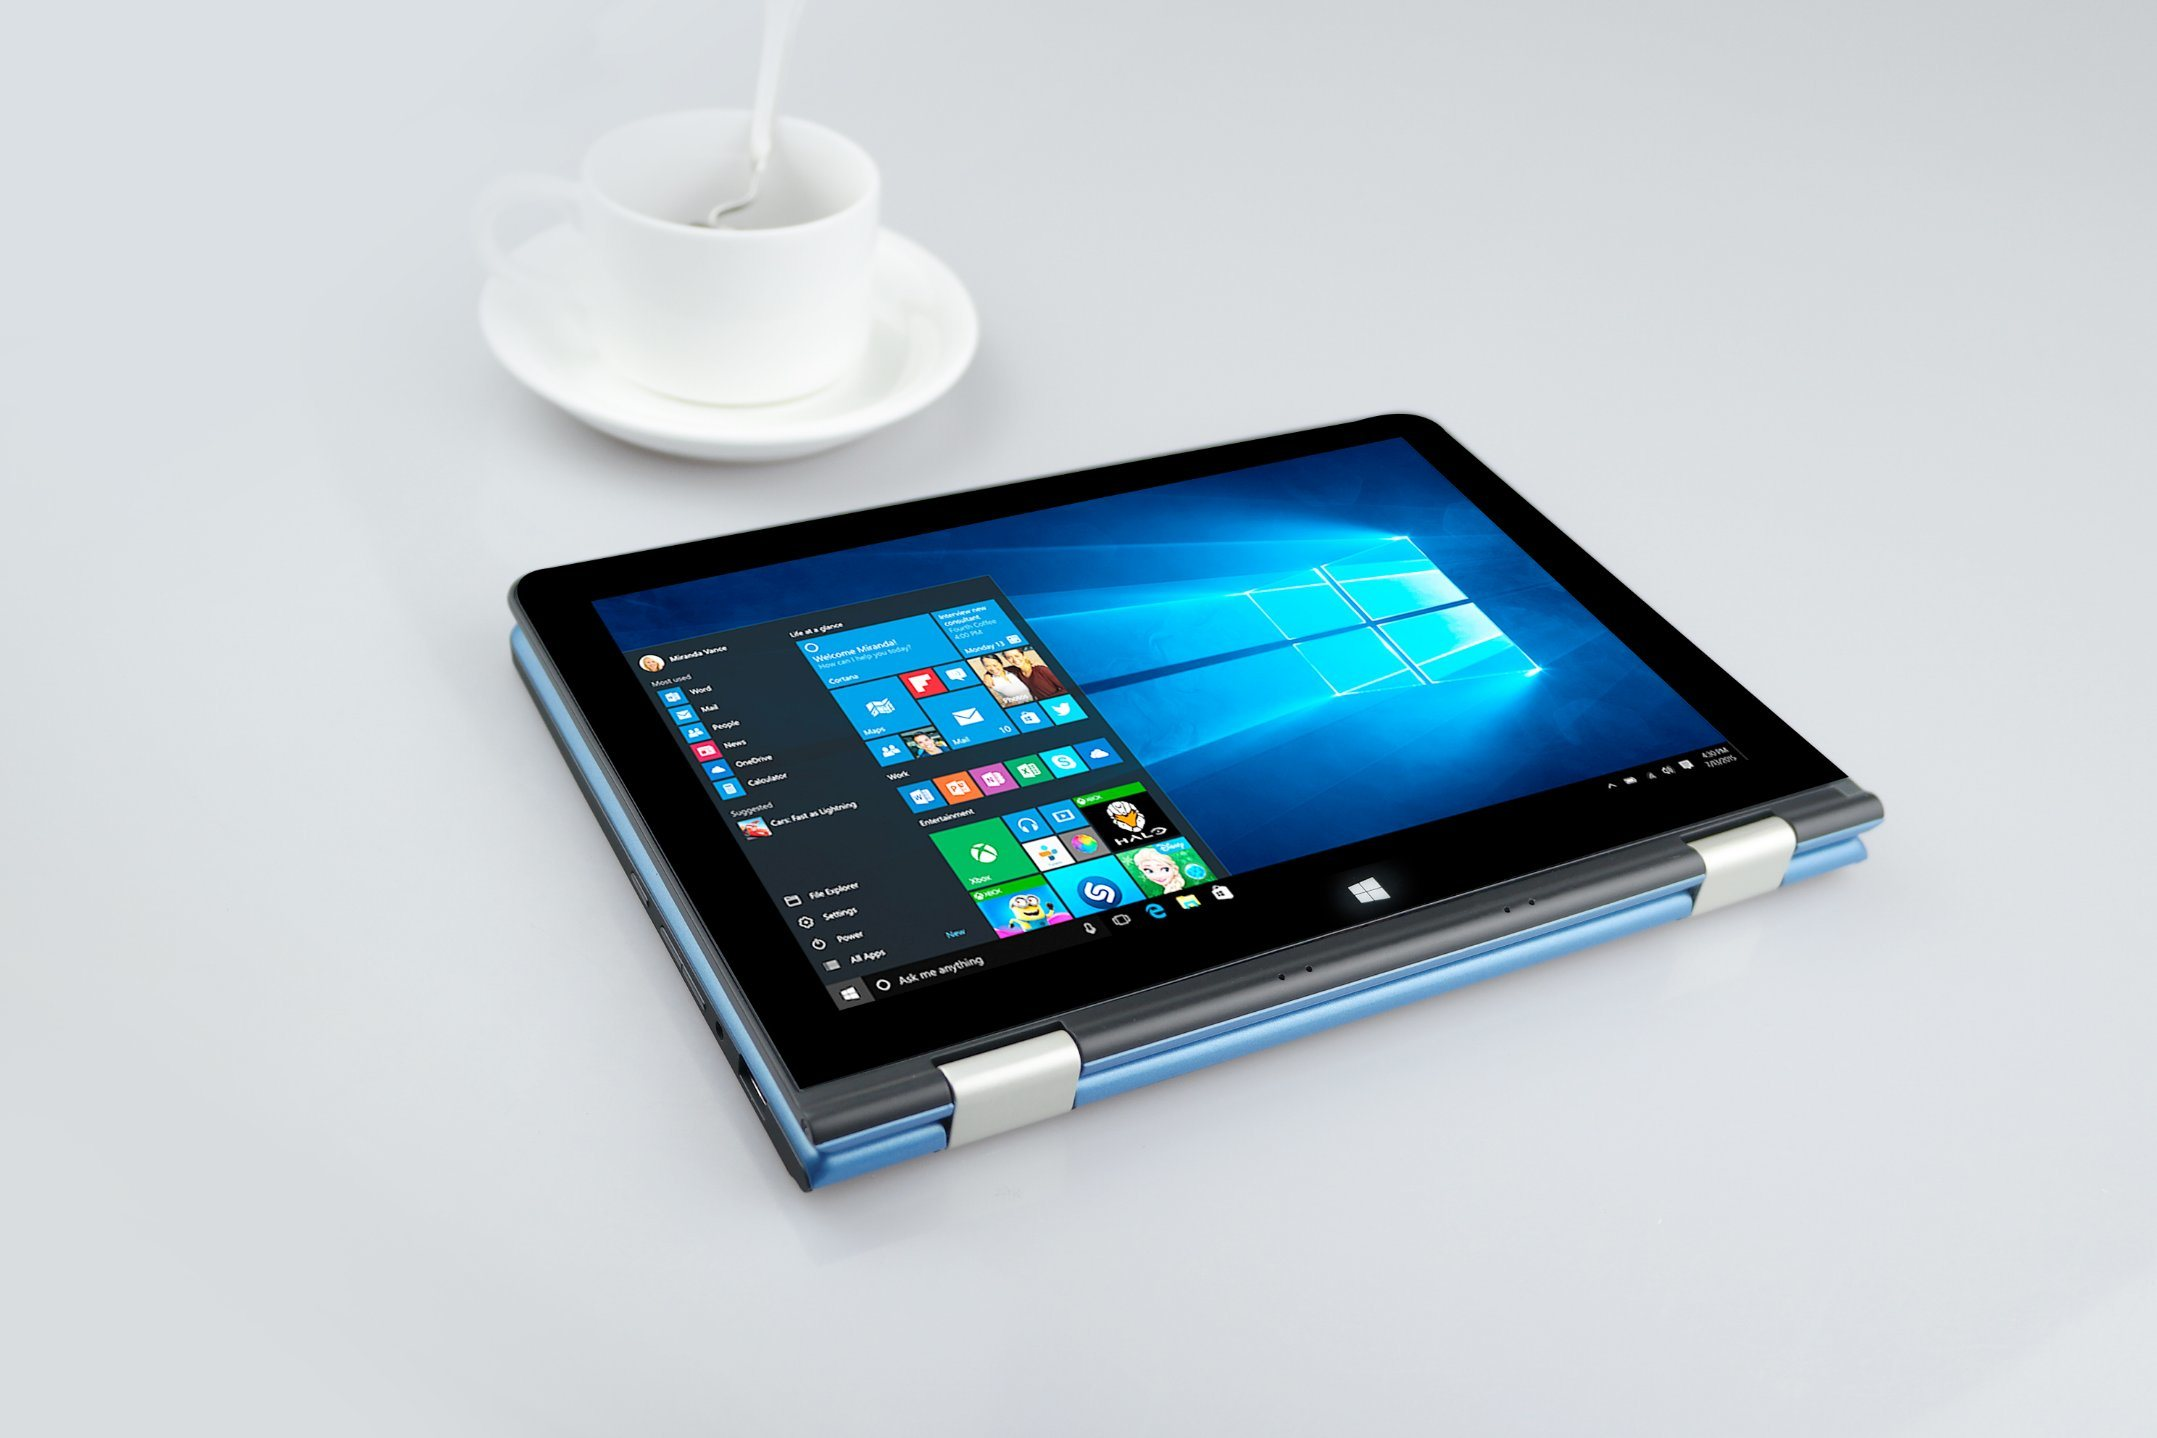 Best Laptops Windows and Andriod 10.1 Inch IPS, Mipi, Resolution 800*1280 Yoga Laptop with 4G Lte